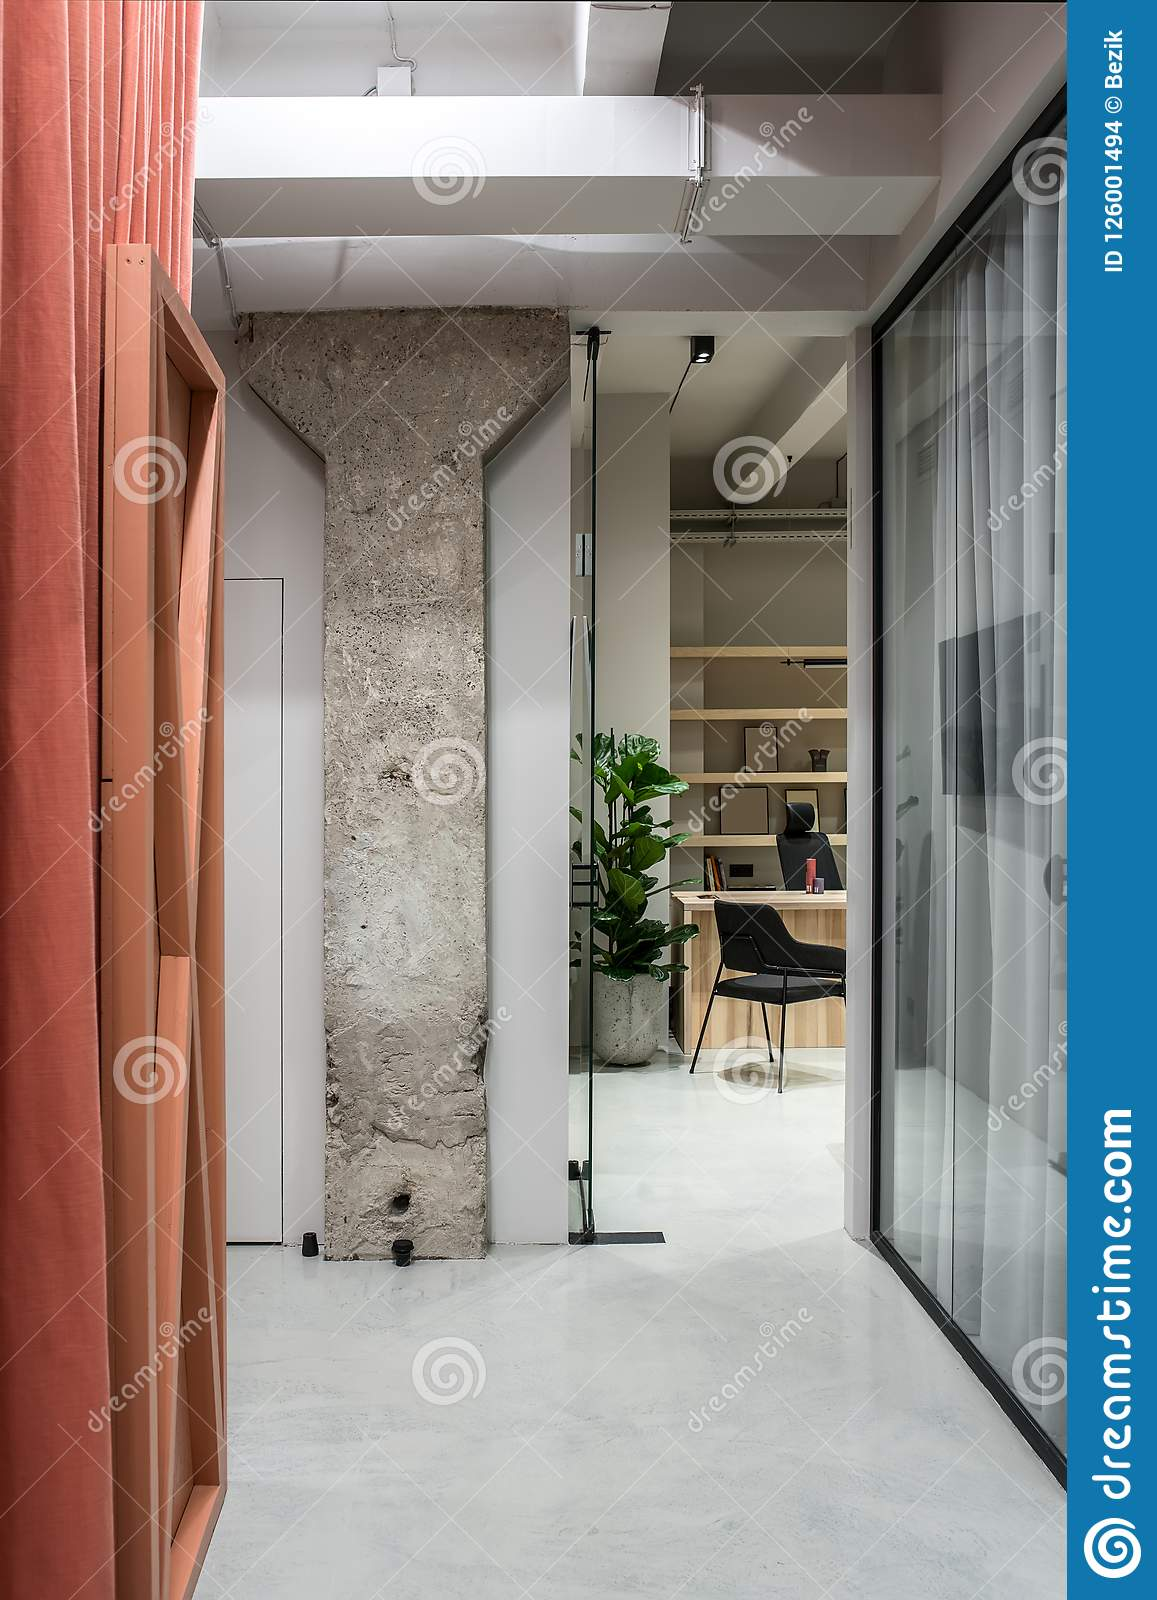 Stylish Interior In Loft Style With Gray Walls Stock Photo Image